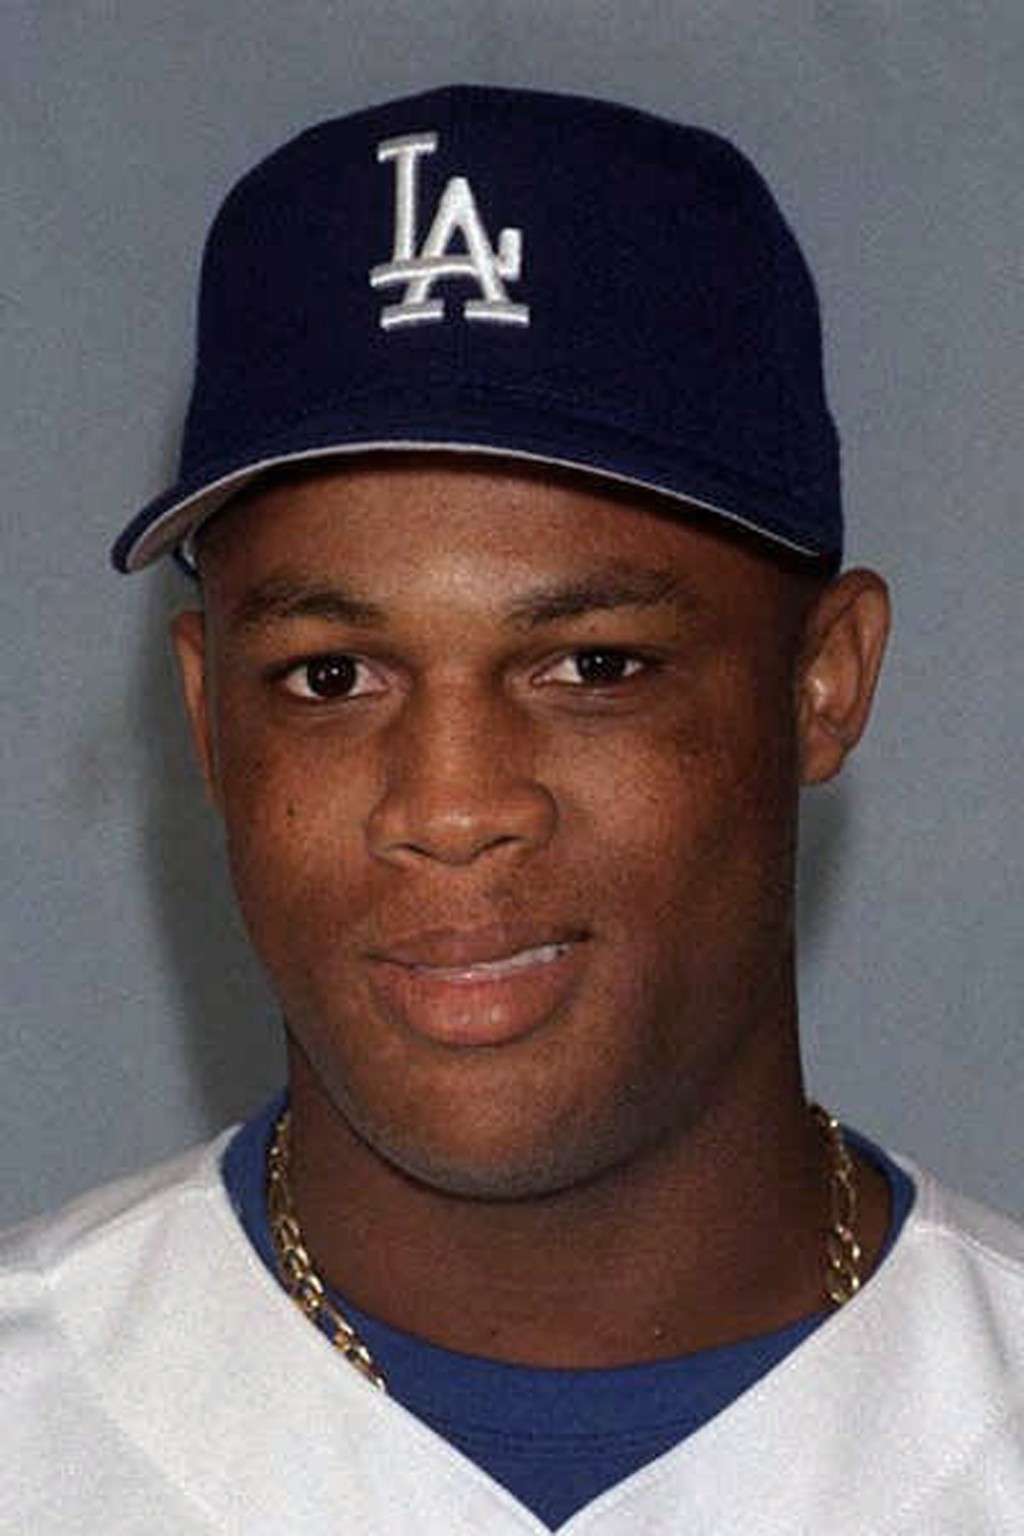 FILE - This is a 1999 file photo showing Adrian Beltre of the Los Angeles Dodgers baseball team. Beltre, who got his 3,000th career hit last season, i